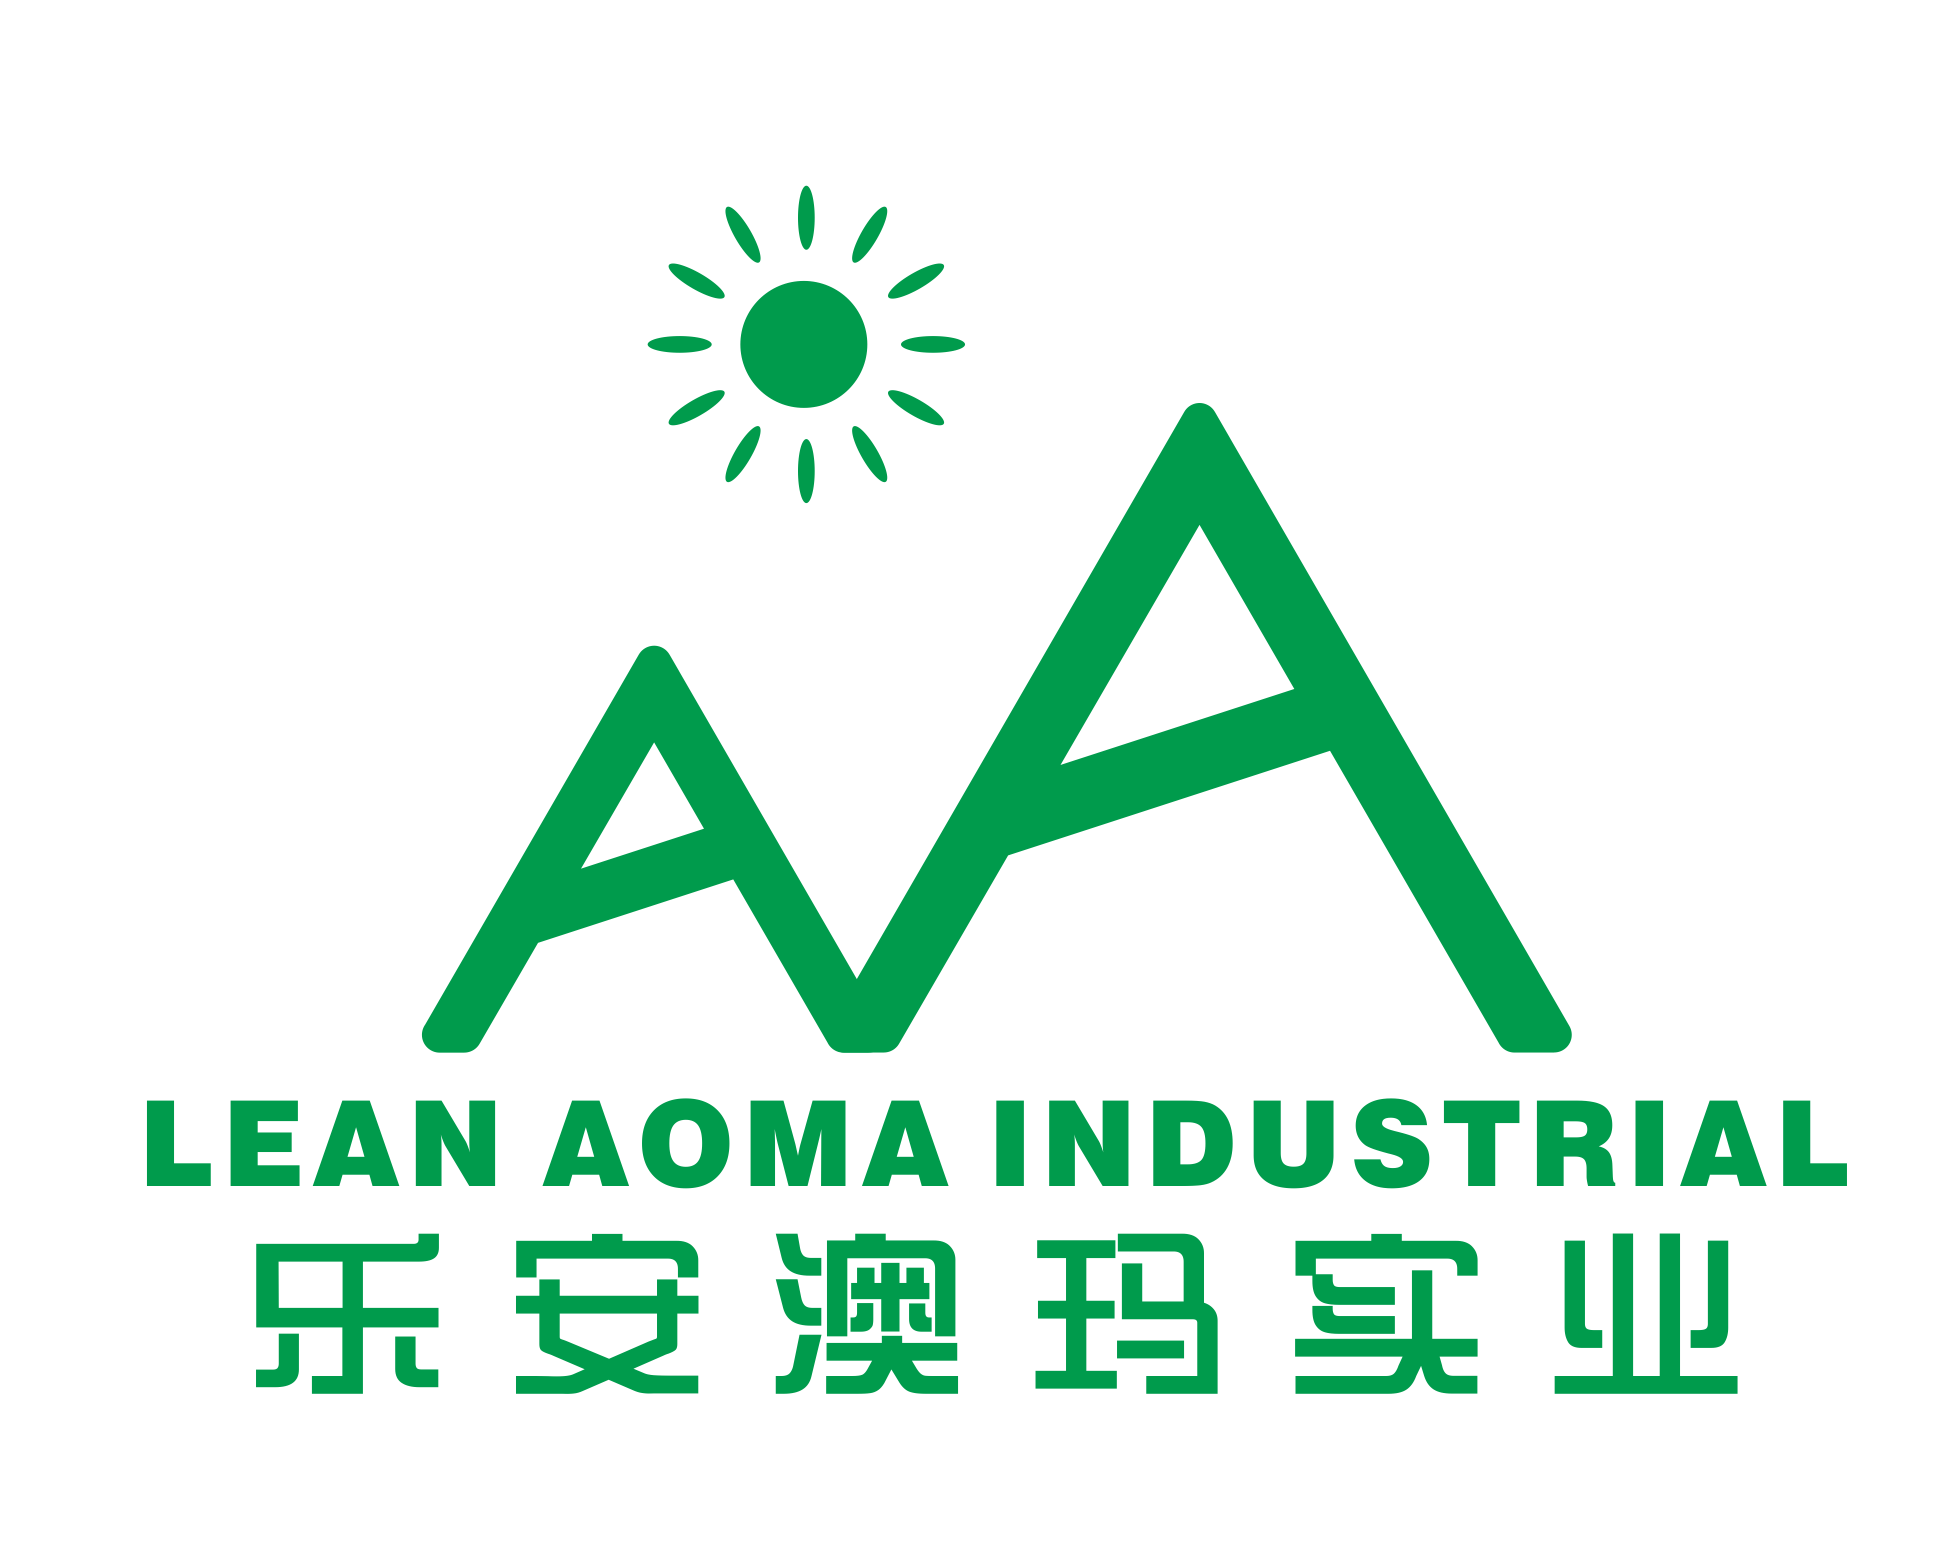 LEAN AOMA INDUSTRIAL CO. LTD